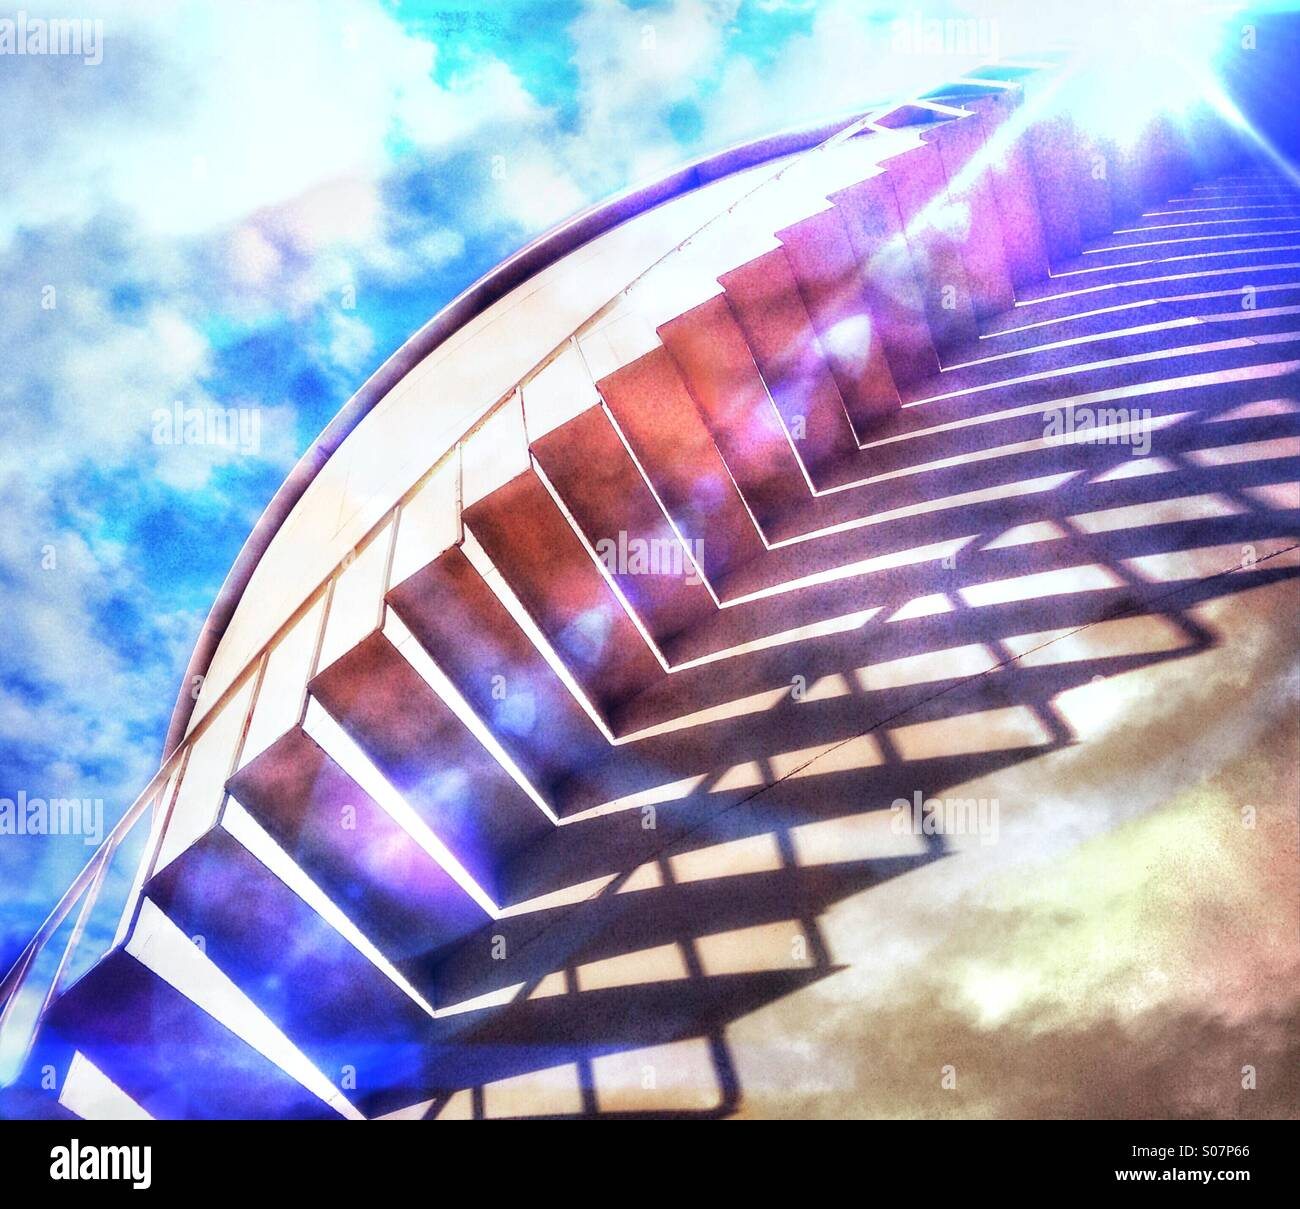 Stairway To Heaven - Stock Image